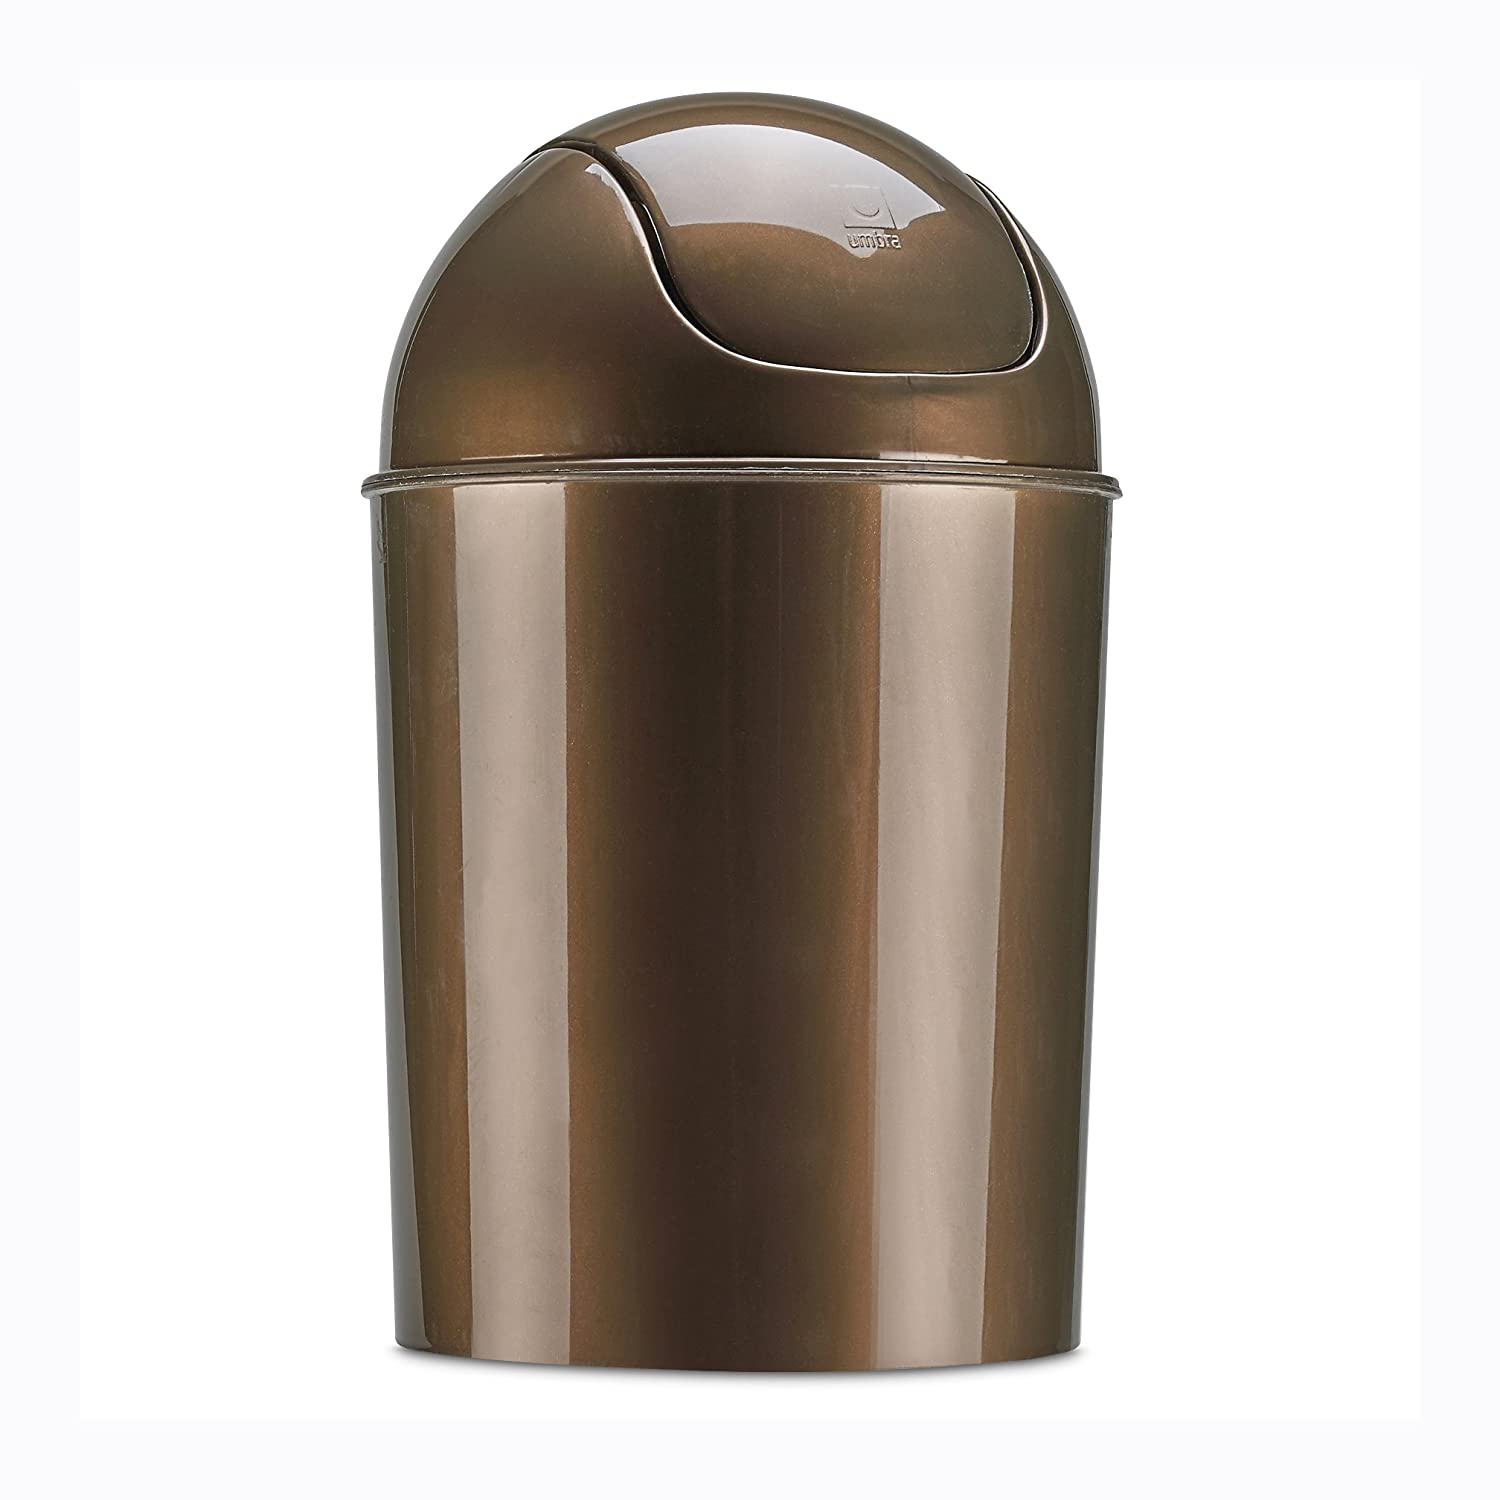 Umbra Mini Waste Can 1-1//2 Gallon with Swing Lid Bronze